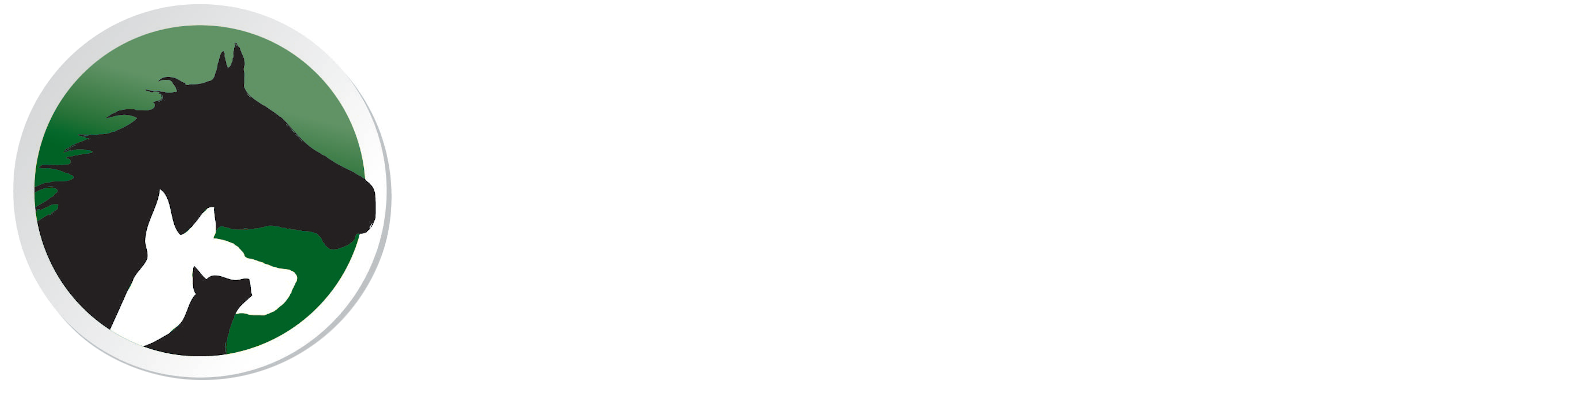 Dogwood Acres Veterinary Clinic logo